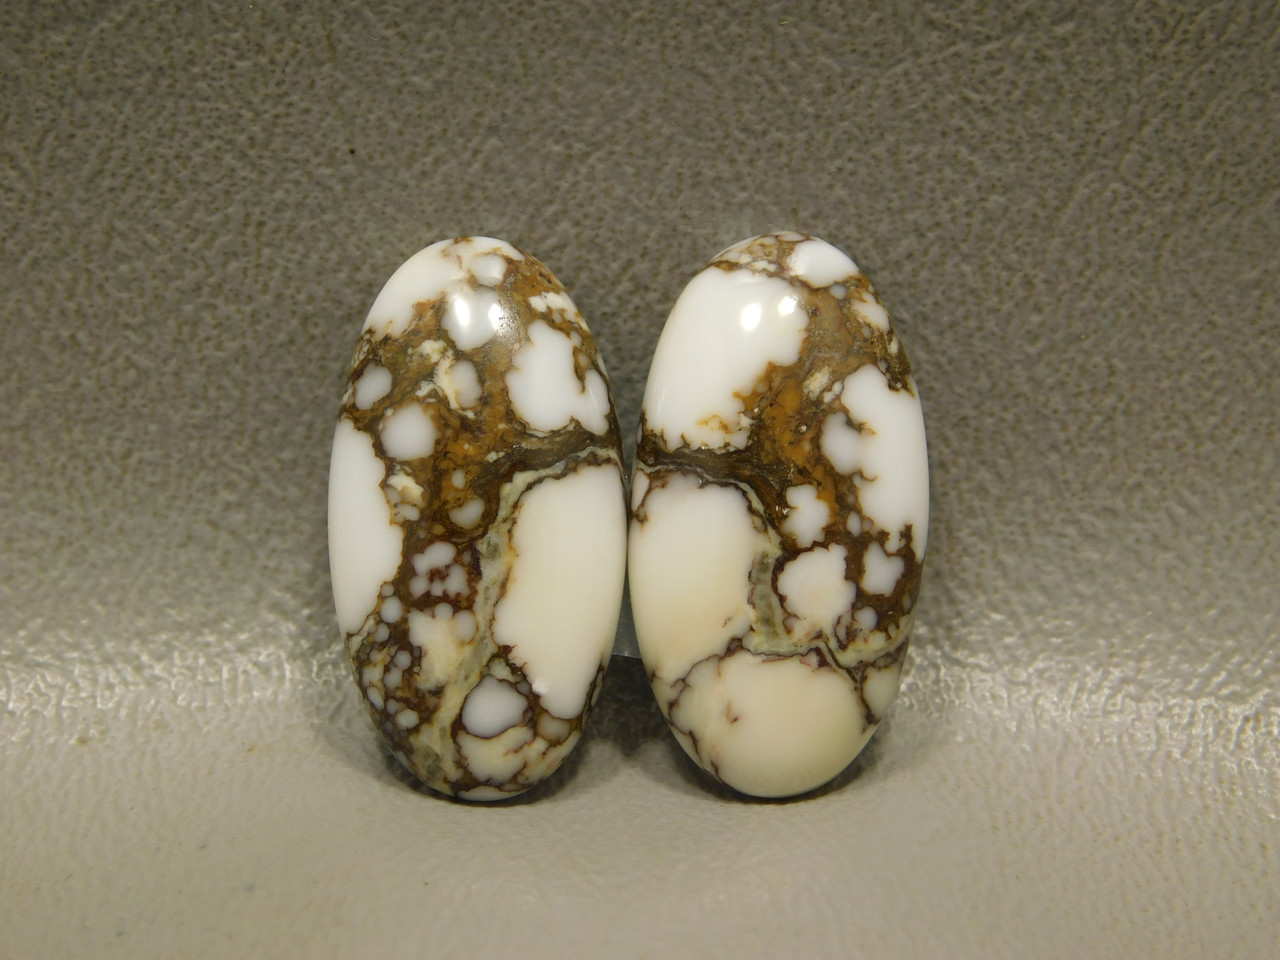 Wild Horse White Stone Cabochons Ovals Matched Pairs for Earrings  #28